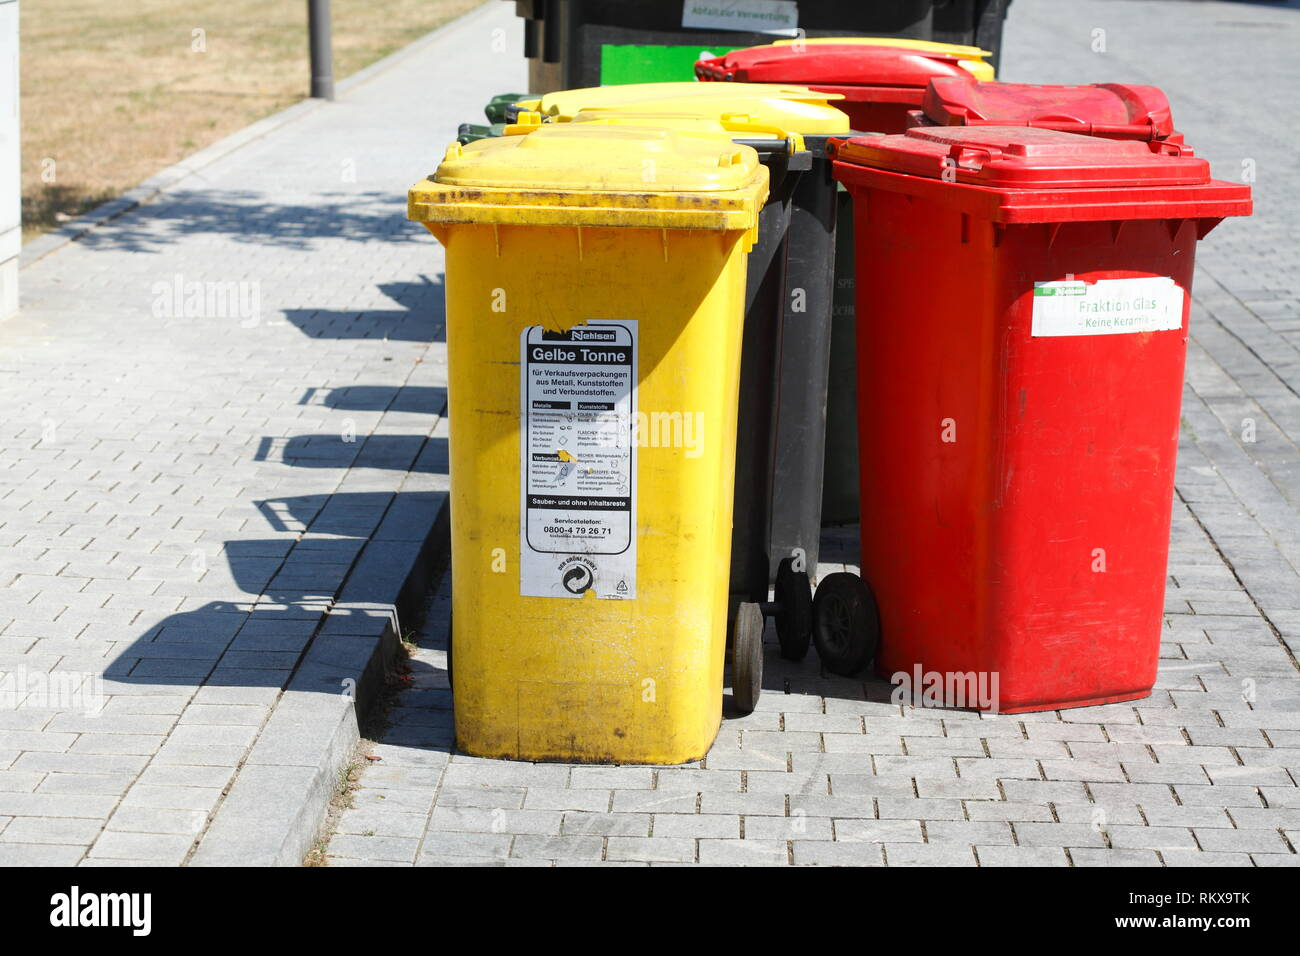 Colorful Garbage Cans Colorful Garbage Cans Yellow Bin For Plastic Garbage Red Ton For